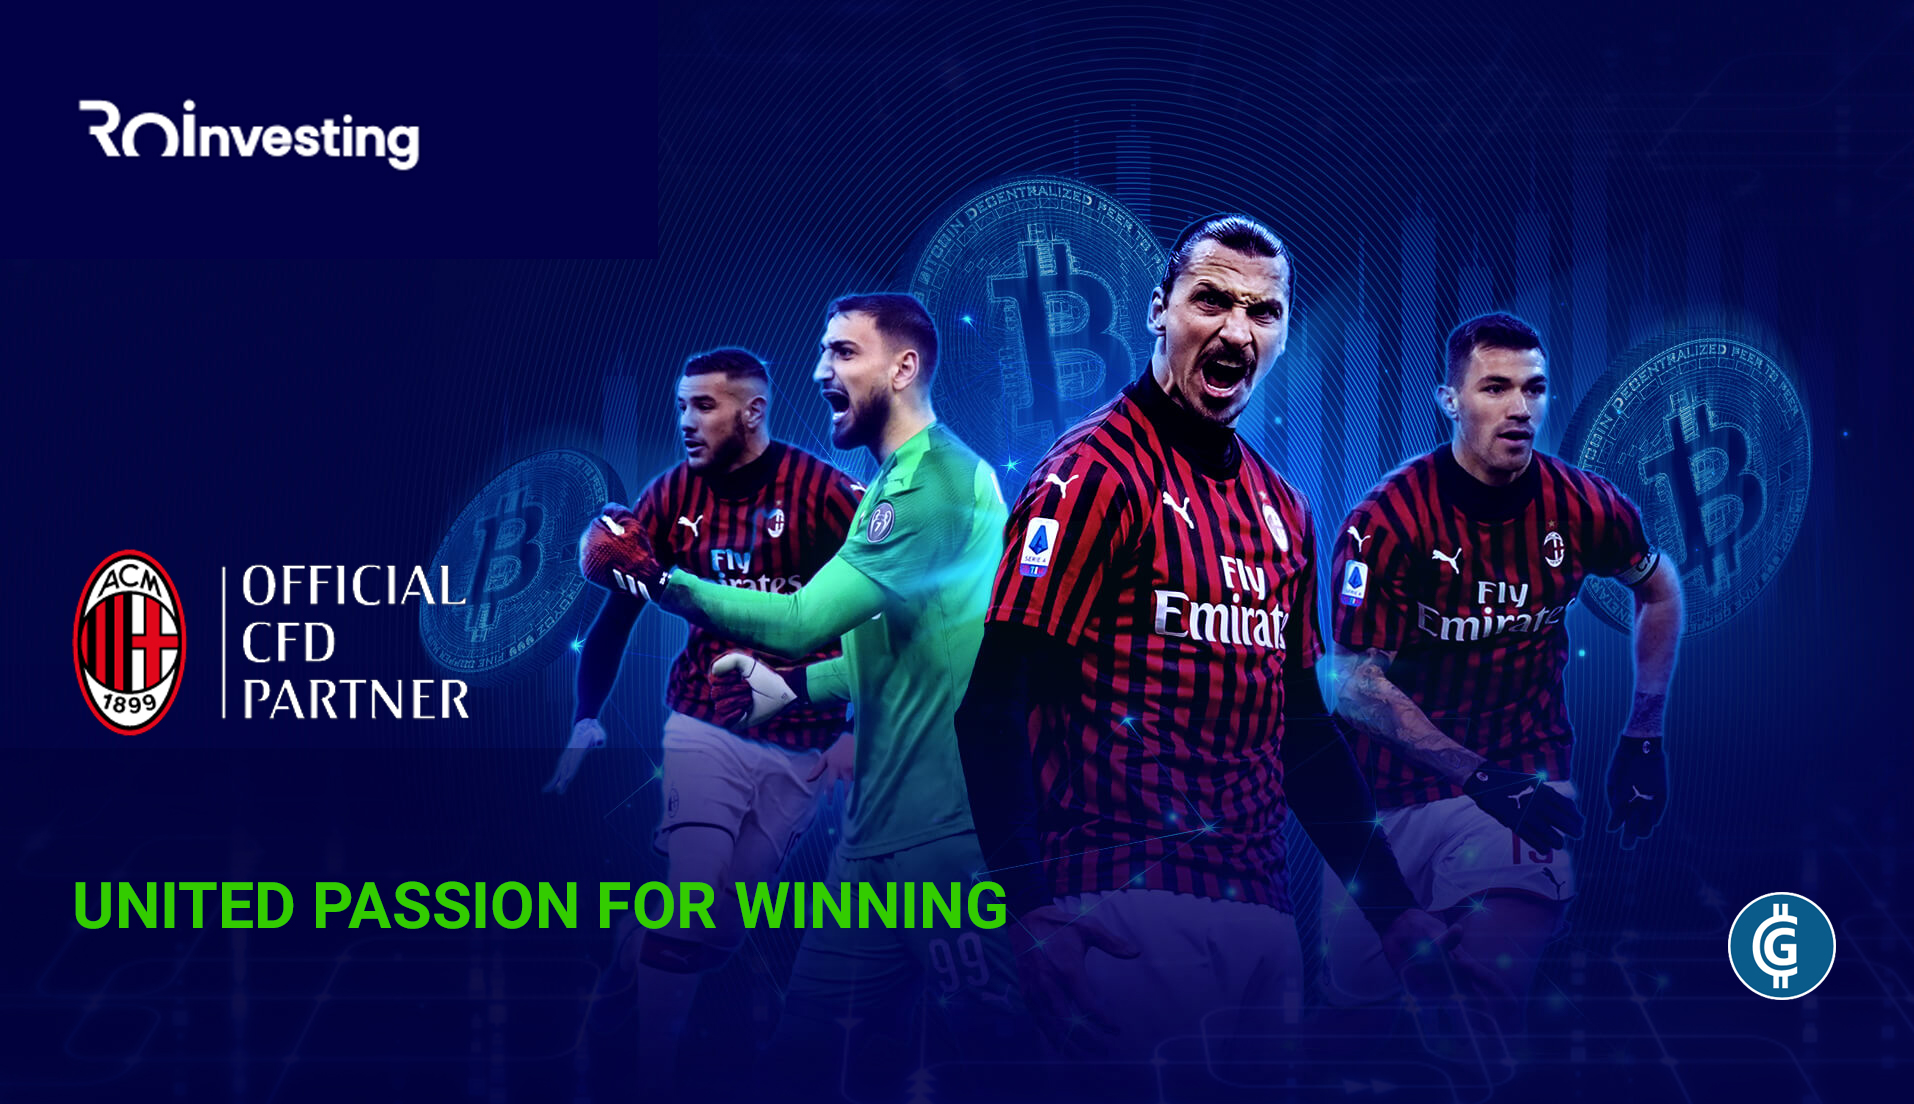 Trade CFDs Passionately with AC Milan's Investment Partner: ROInvesting